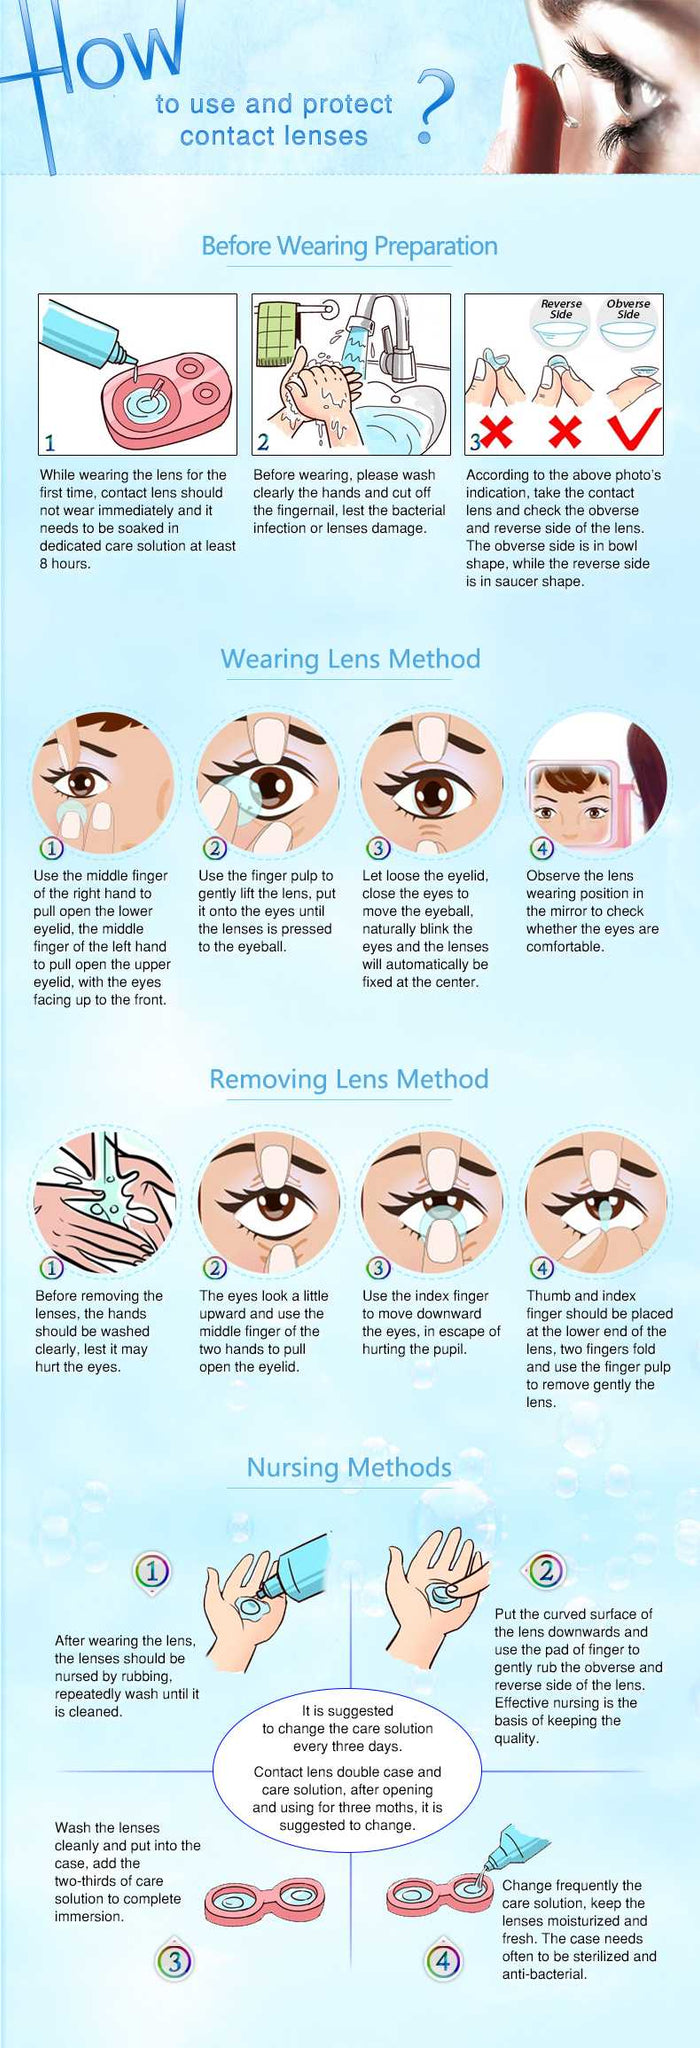 How to Use and Protect Contact Lenses